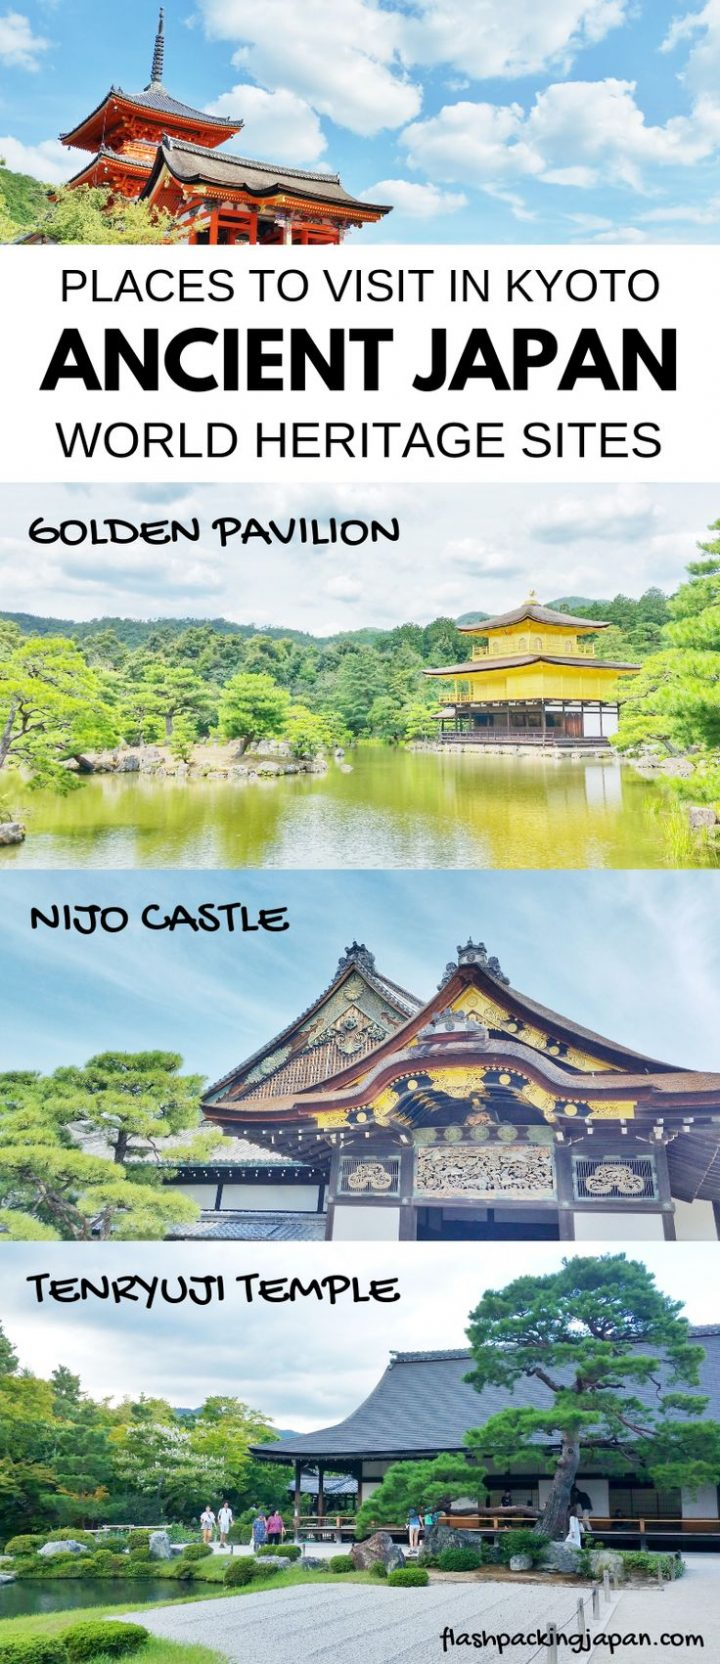 Travel Japan. Travel ideas for ancient Japan culture. Best places to visit in Kyoto Japan. Best things to do in Japan like golden temple, nijo castle, tenryuji temple, kiyomizu-dera temple. Outdoor travel destinations, backpacking Japan itinerary tra…  – khipeu